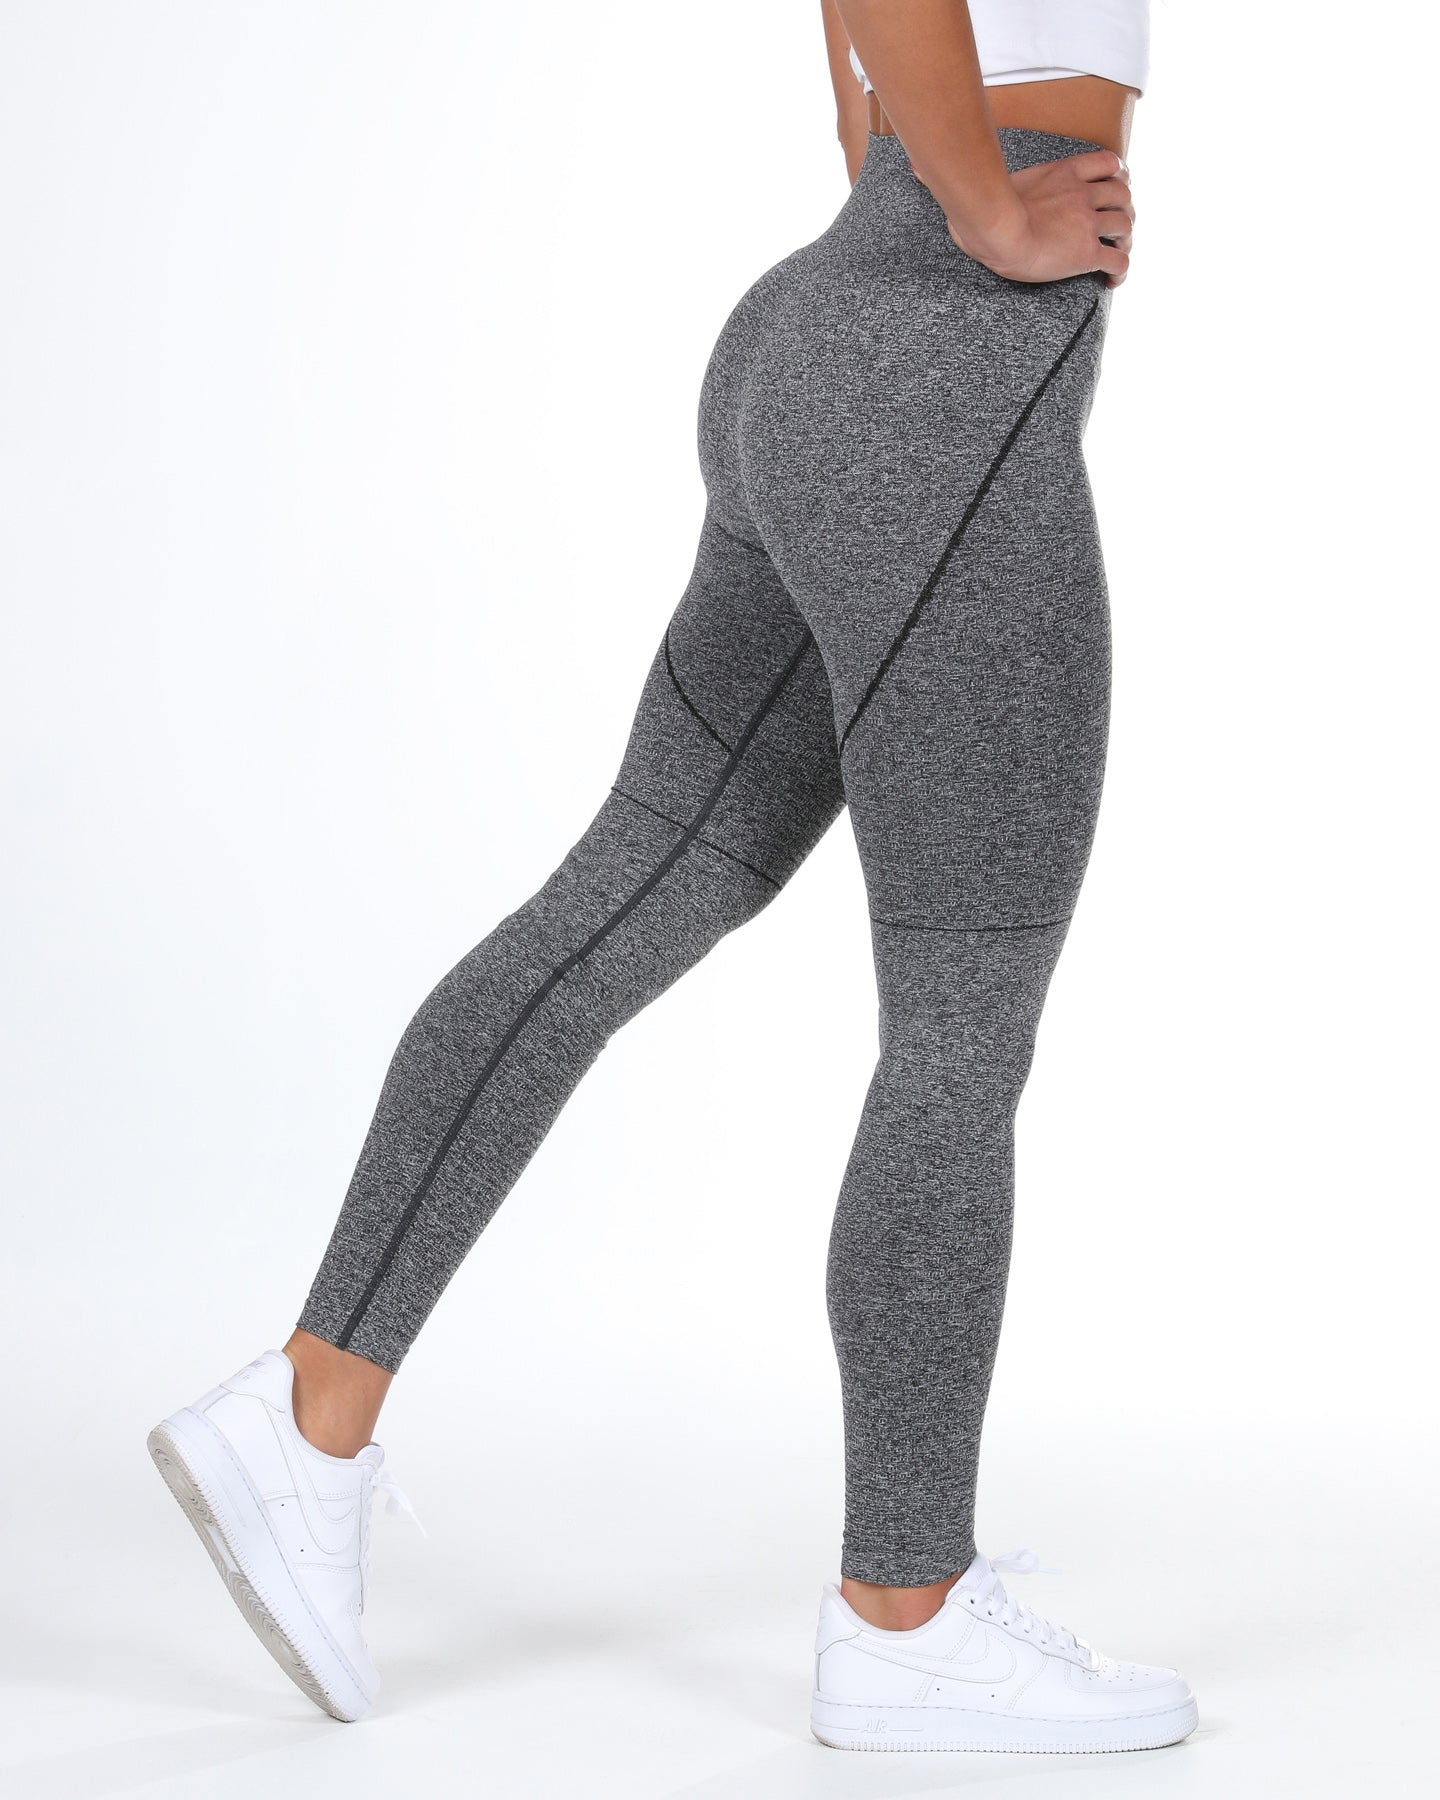 Elite Seamless Leggings - Heather Black